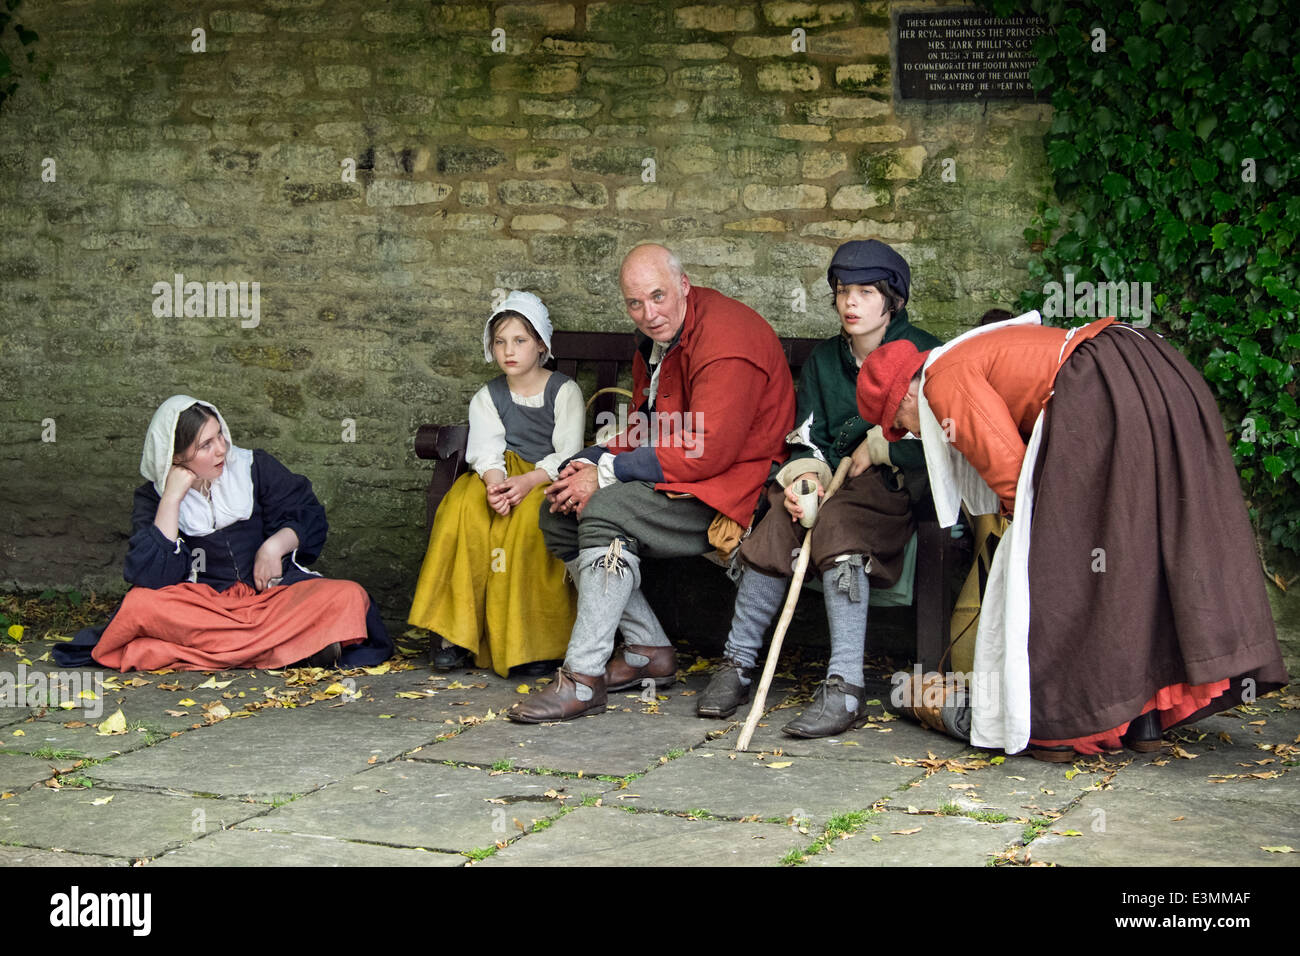 Reenactors portraying a family group of the English civil war period in 17th century costume - Stock Image